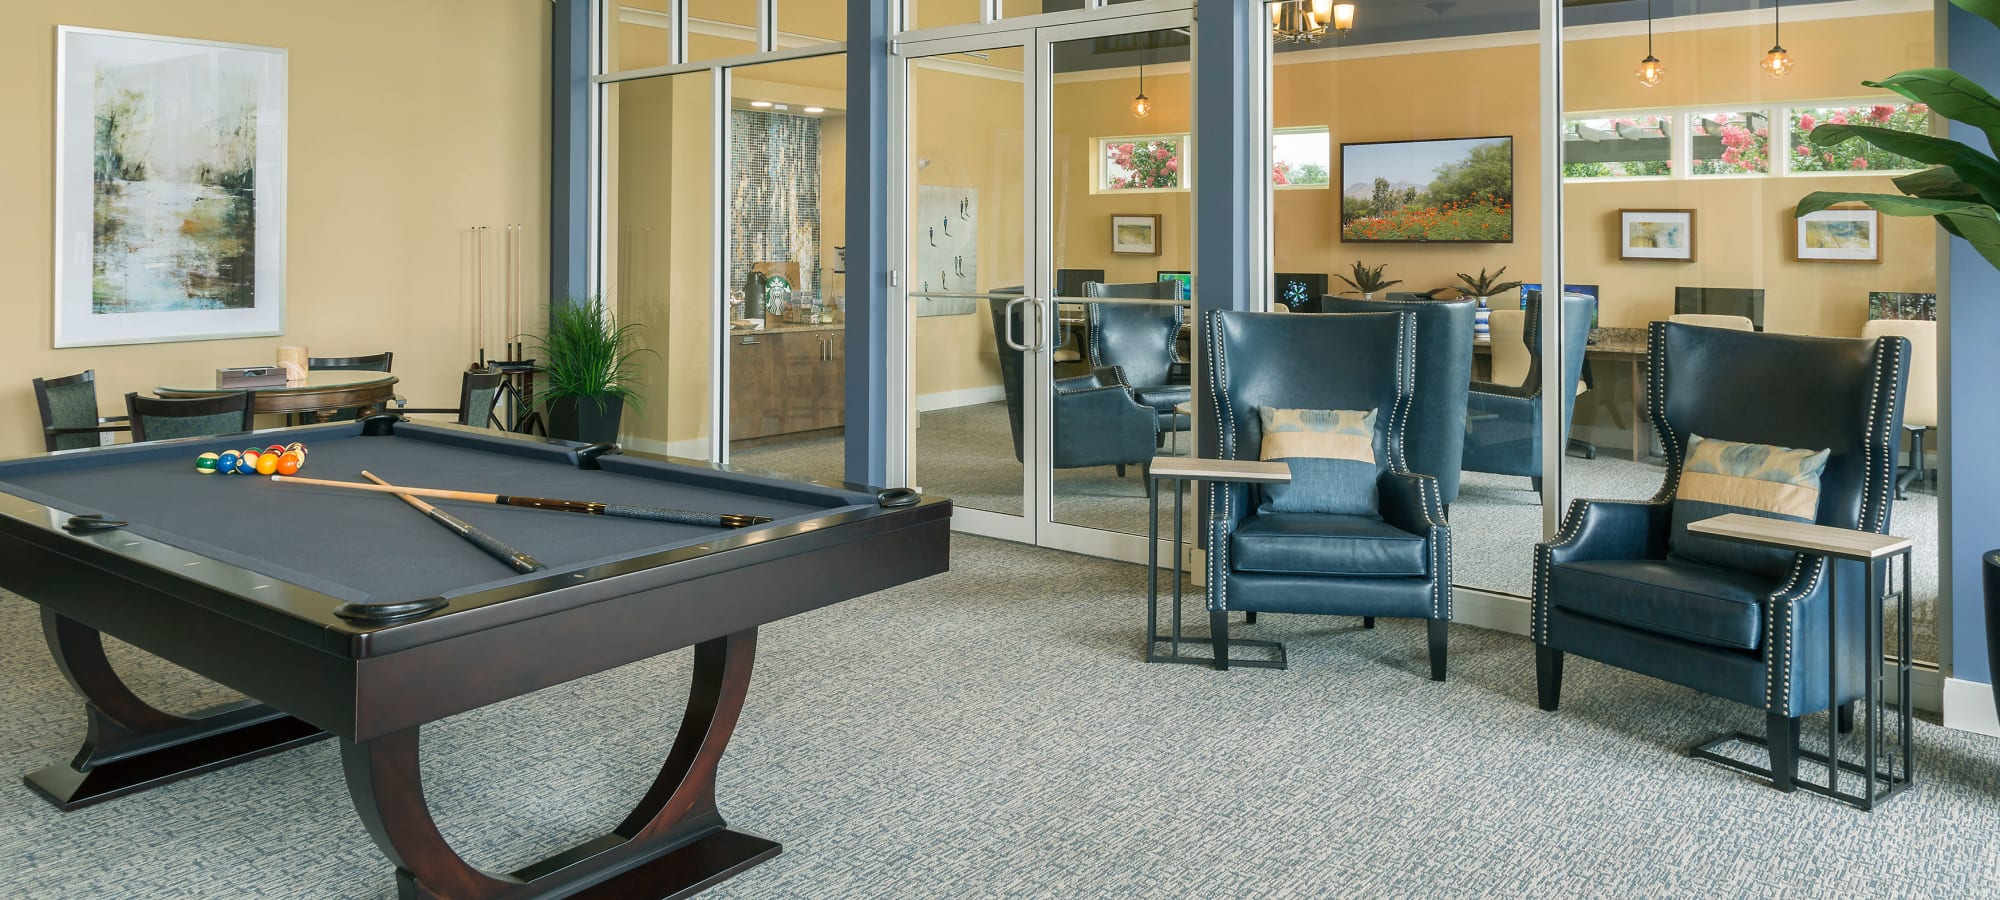 Integra Lakes apartments in Casselberry, Florida